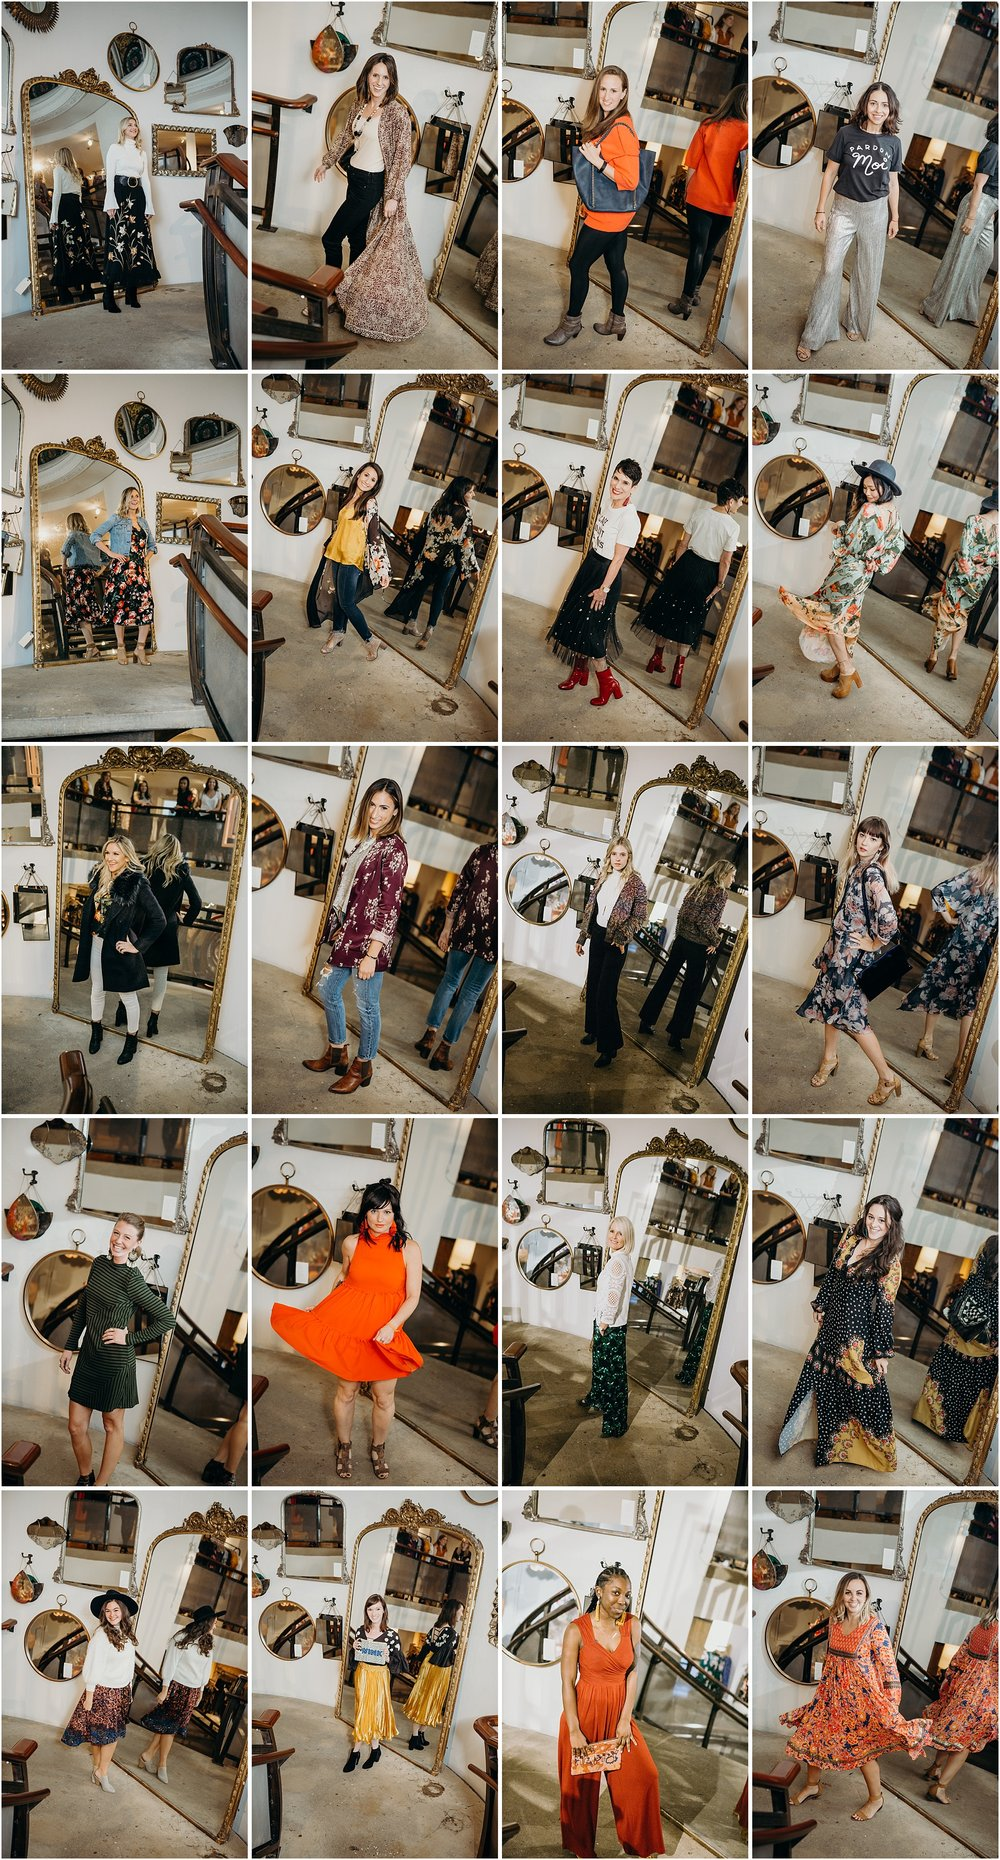 Joe_Mac_Creative_Philadelphia_Photograhy_Anthropologie_Fall_Fashion_0008.jpg